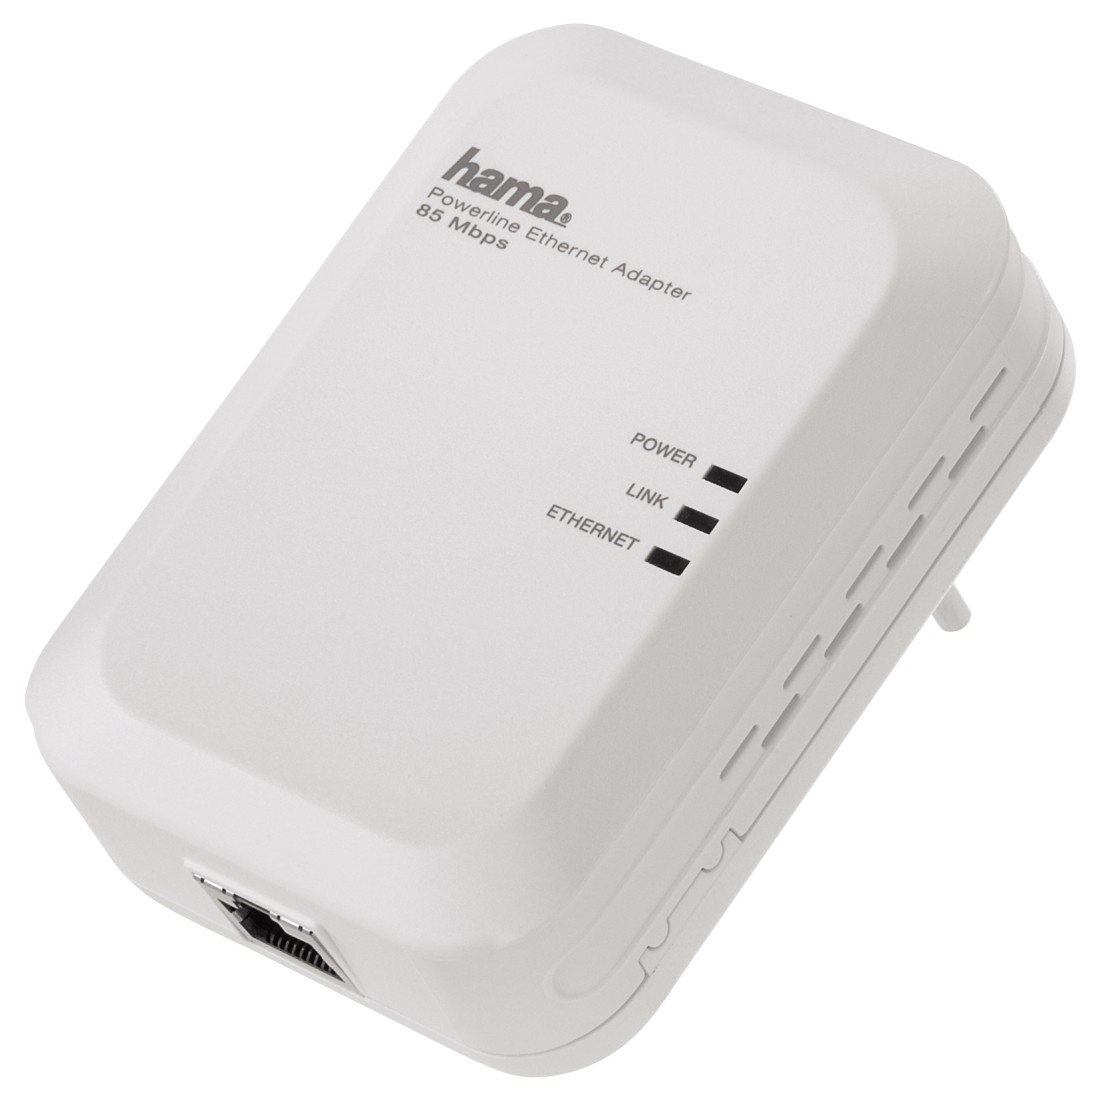 New Driver: HAMA Powerline Ethernet Adapter